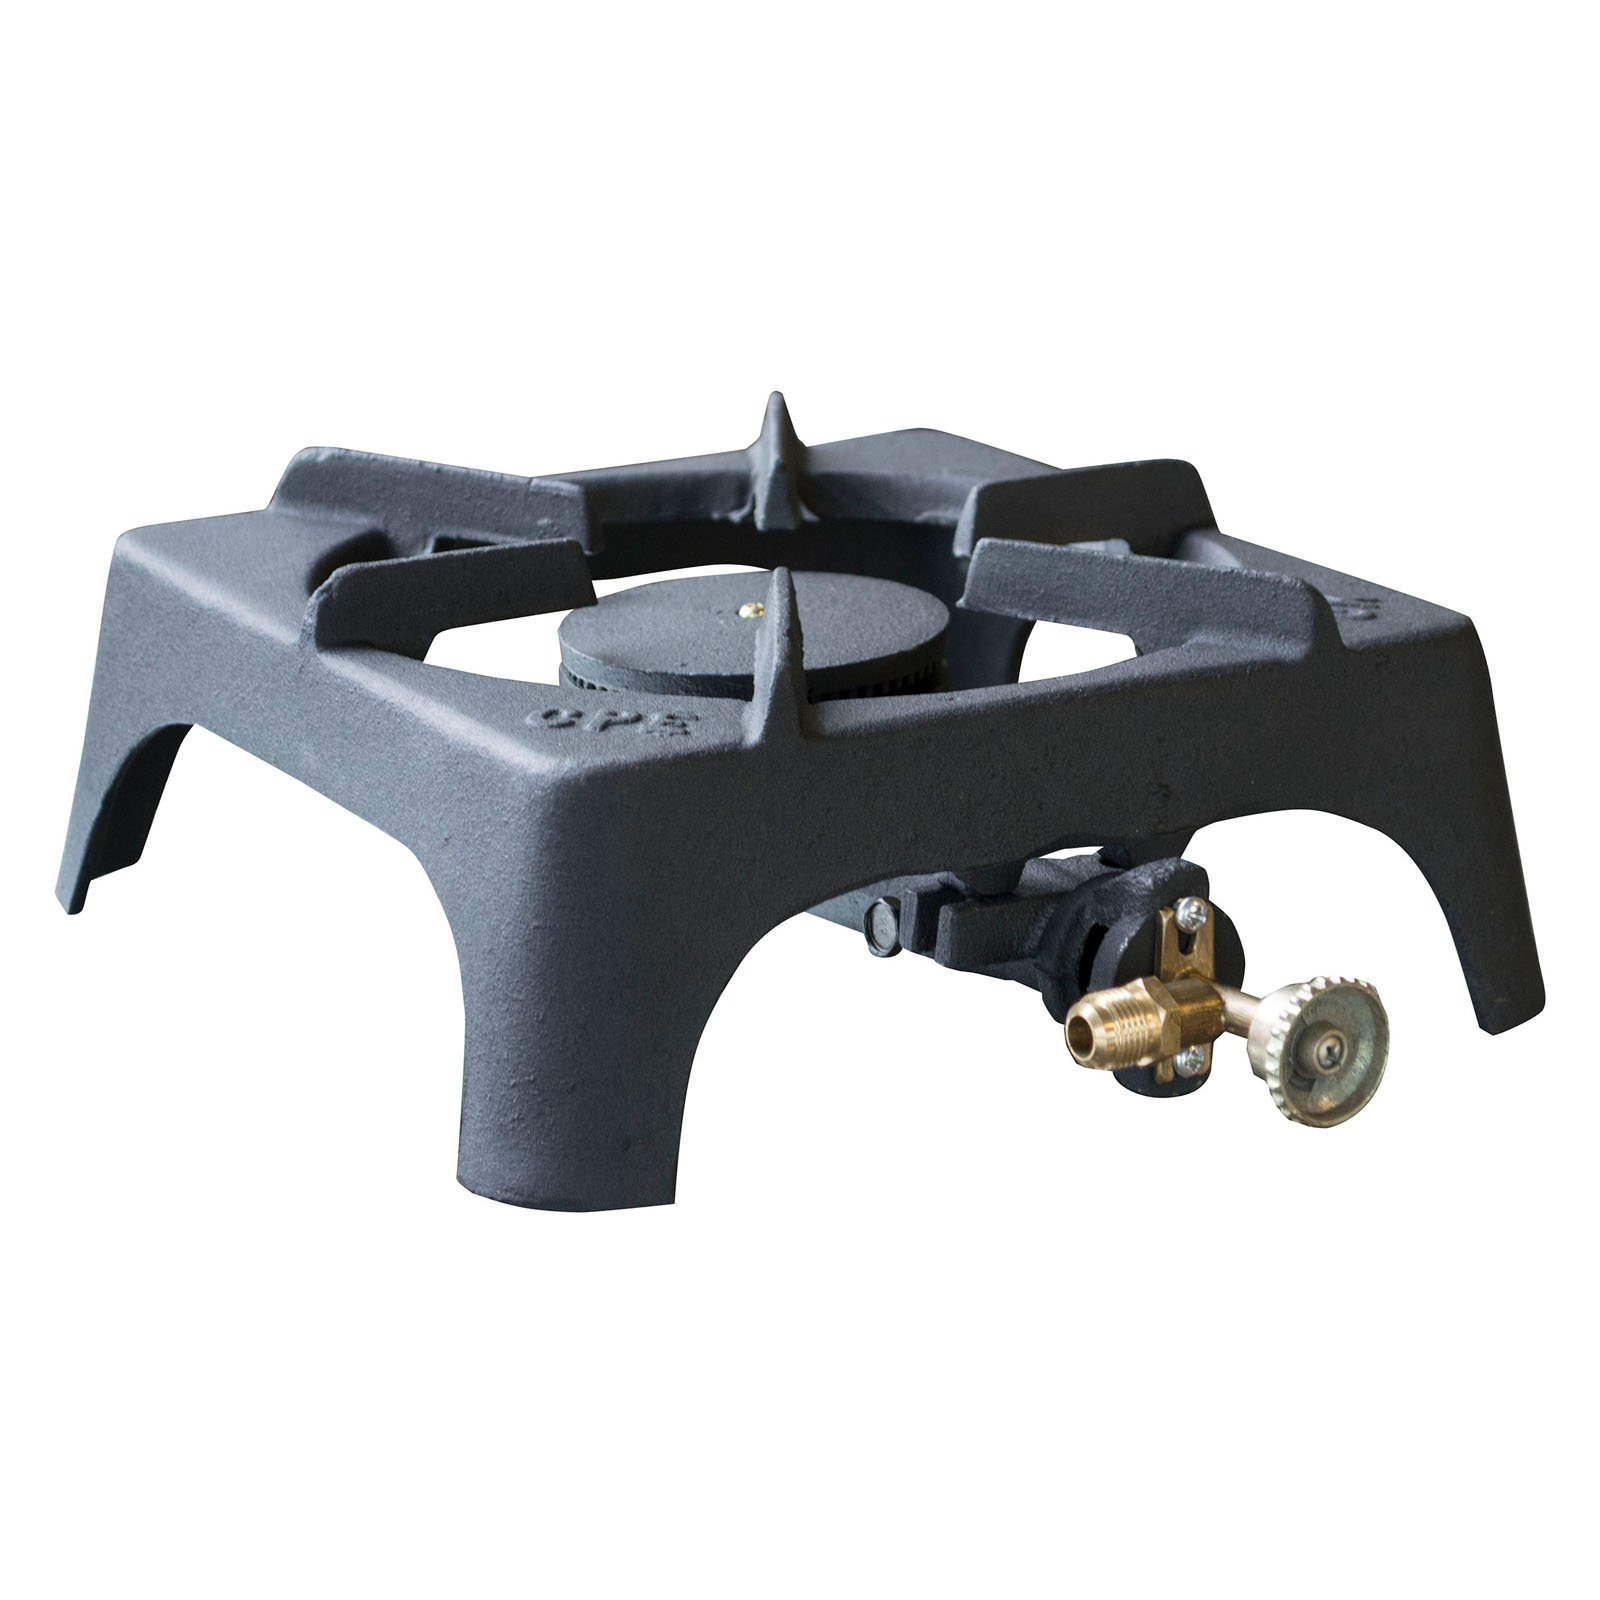 Sportsman Series Single Burner Cast Iron Stove by Buffalo Corp